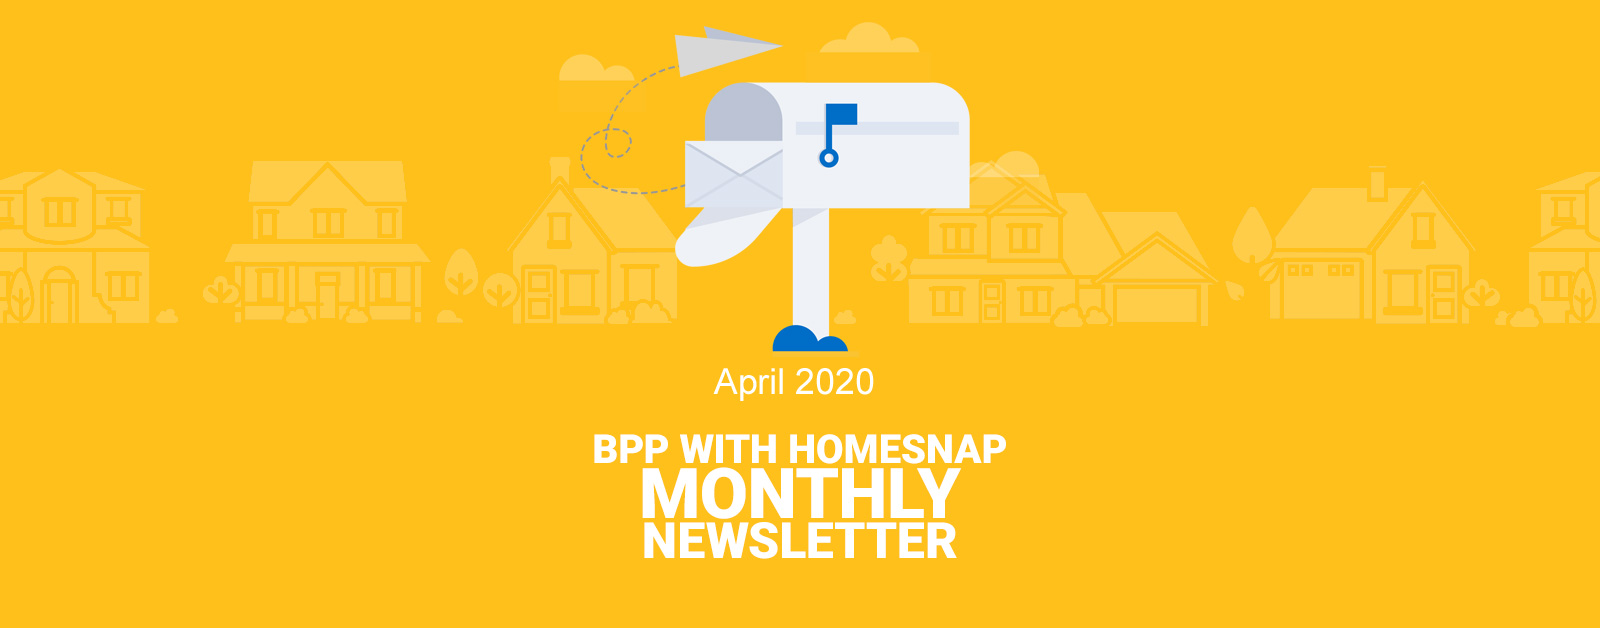 Newsletter April 2020